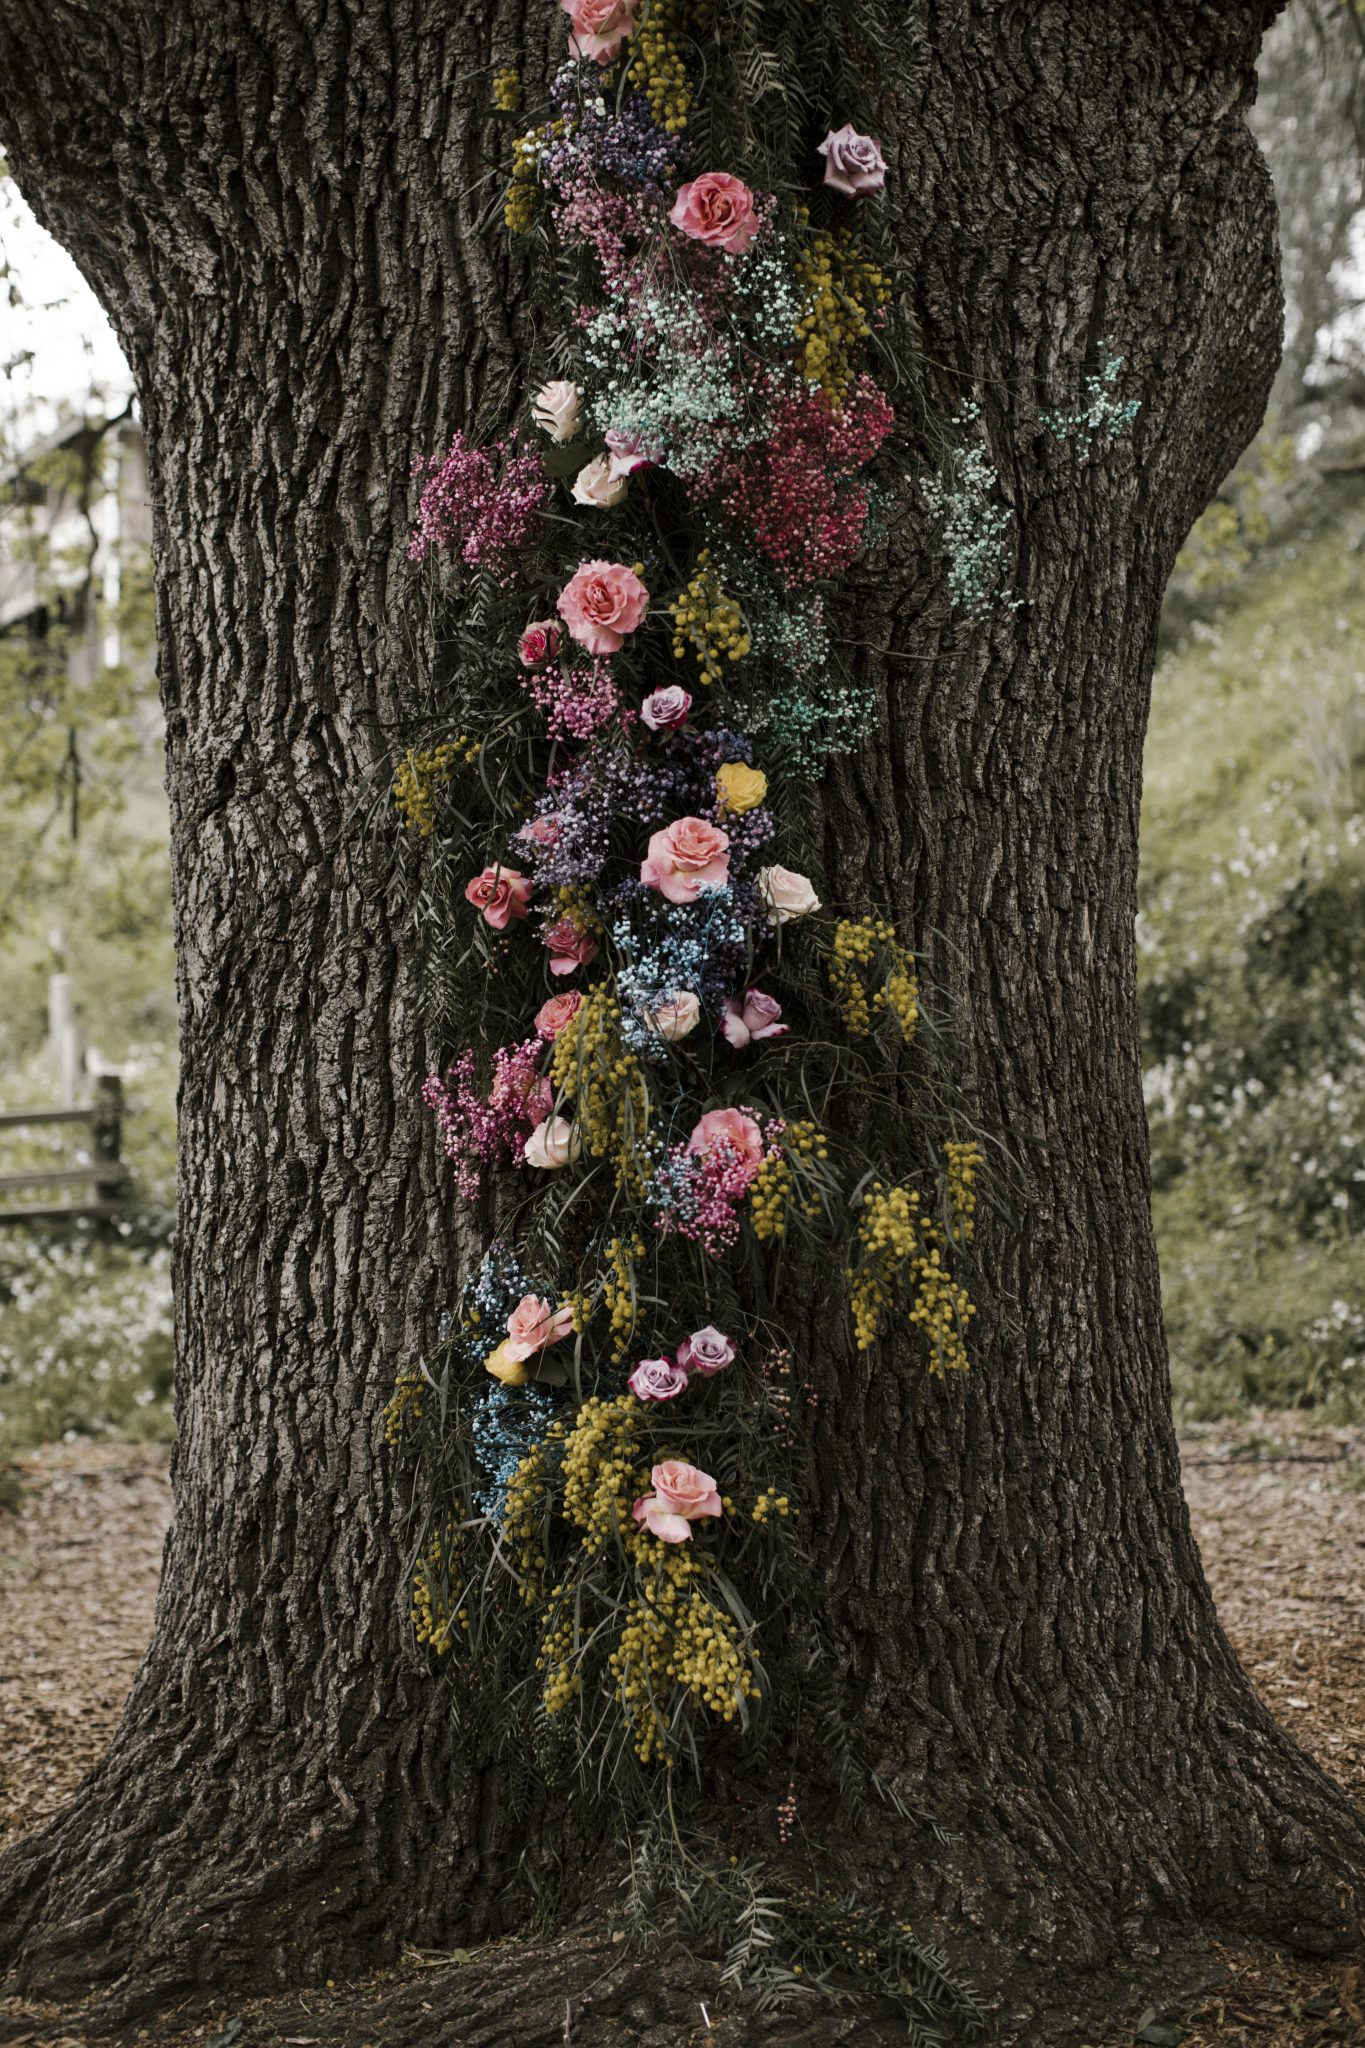 Luna Moss Whimsical Floral Installation